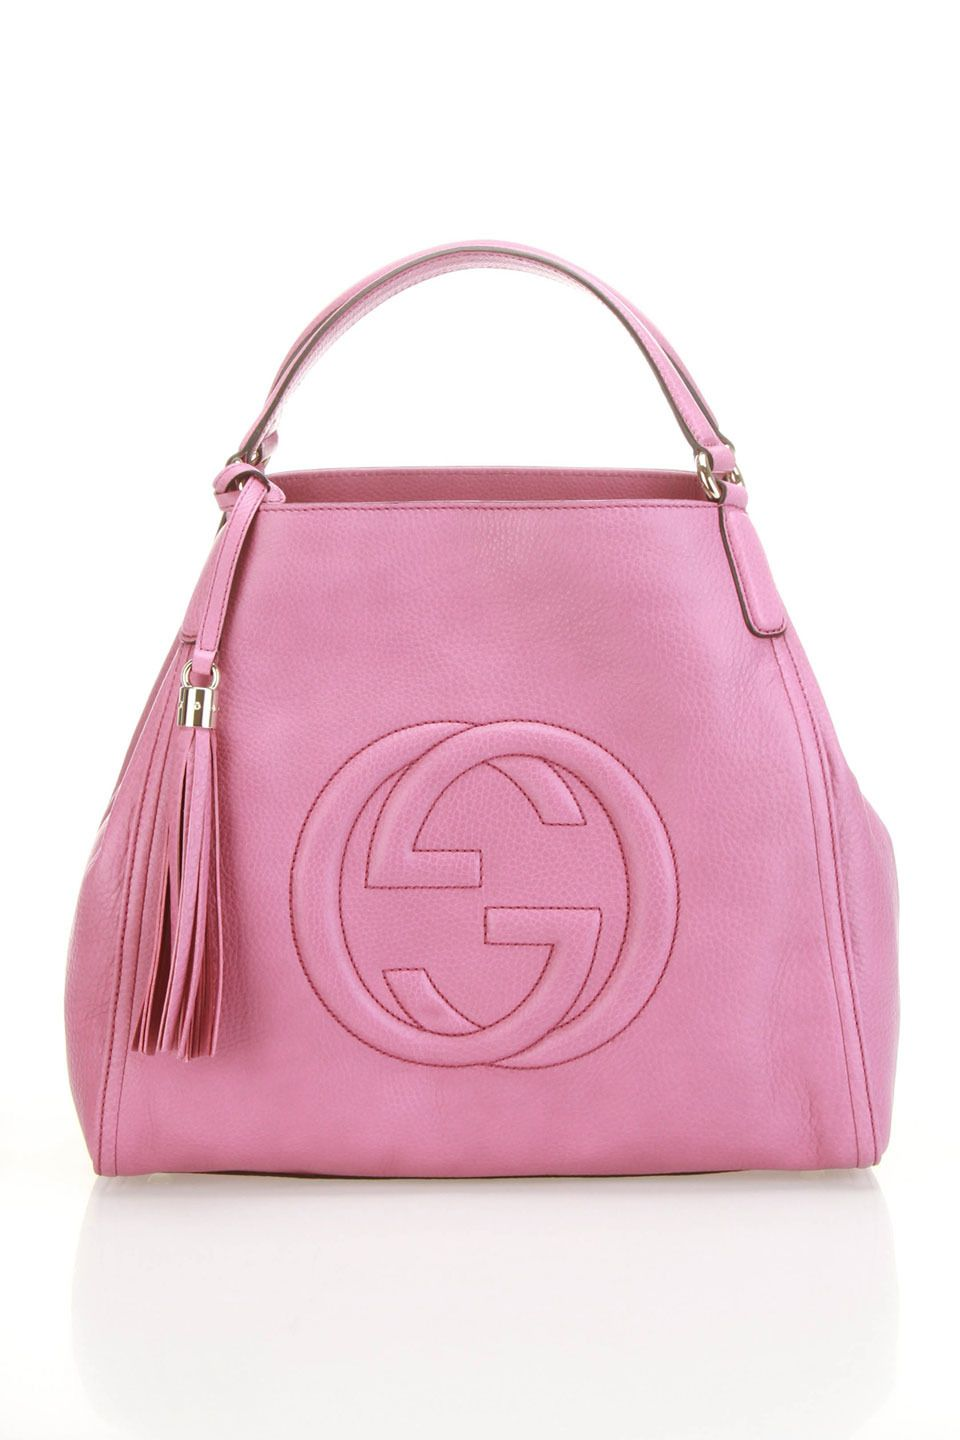 7ead9212a7a Gucci Soho Shoulder Bag In Freesia Rose